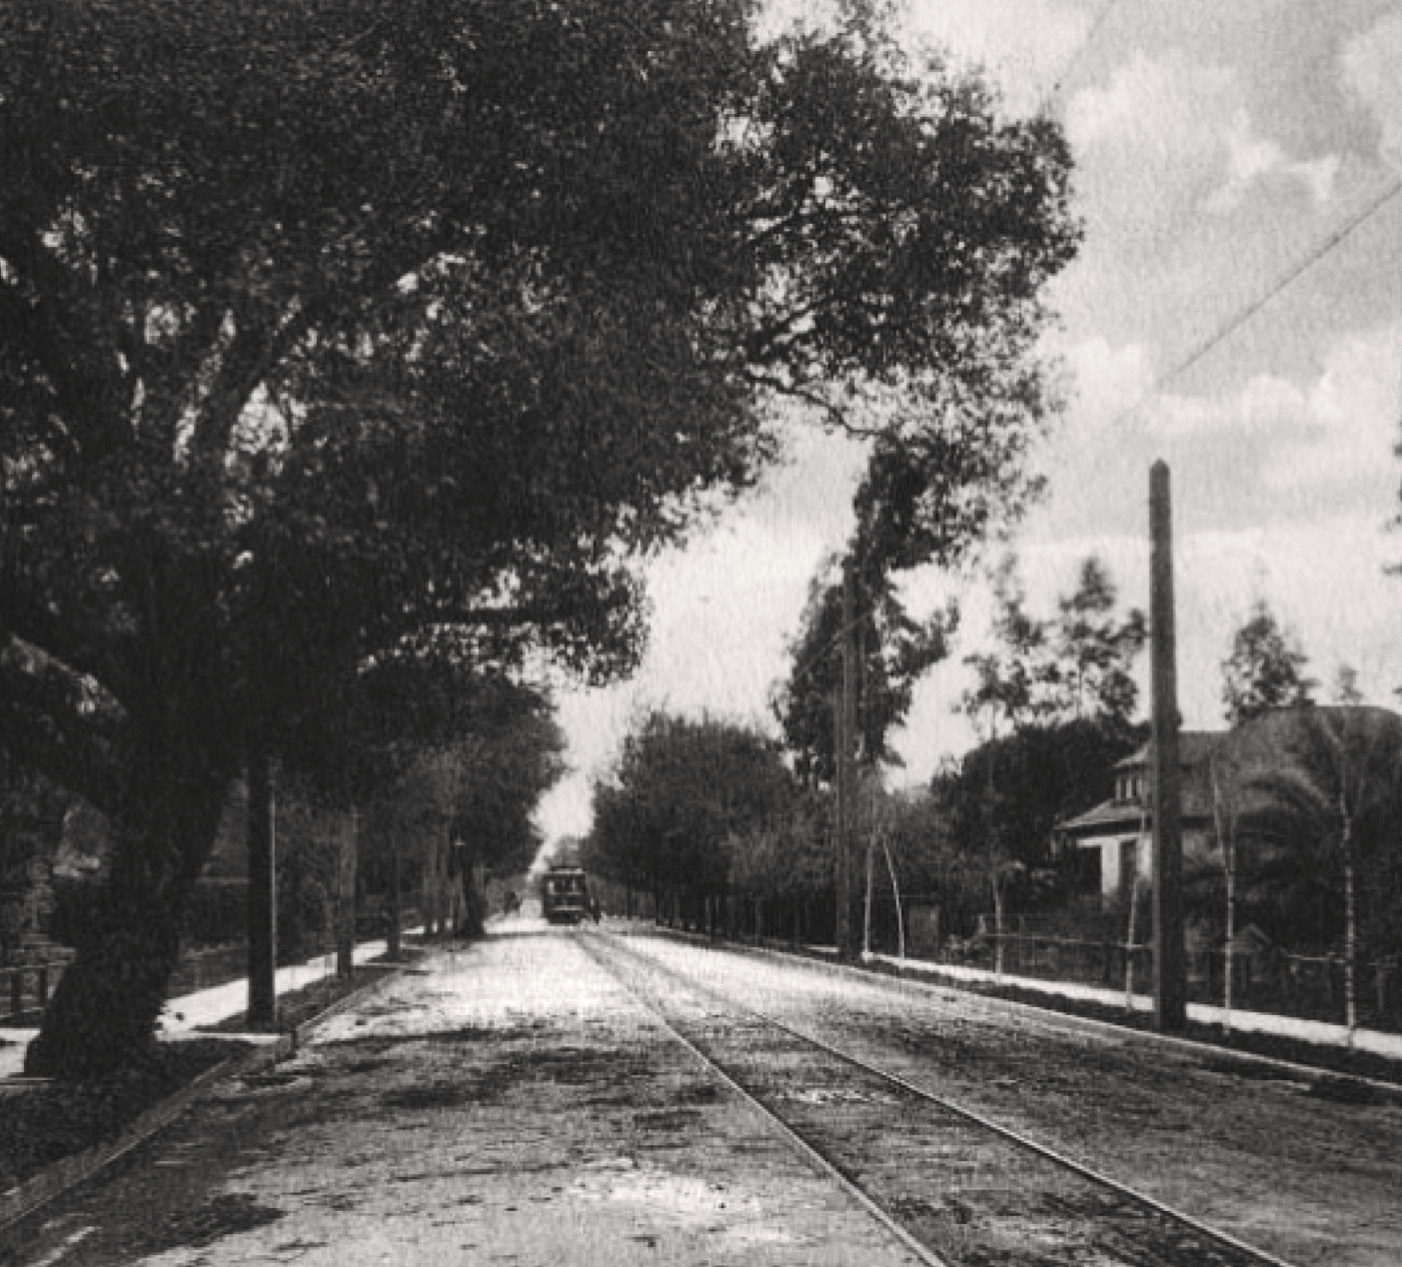 Waverley Street, circa 1912. Distant trolley car and sidewalks, but not yet paved.